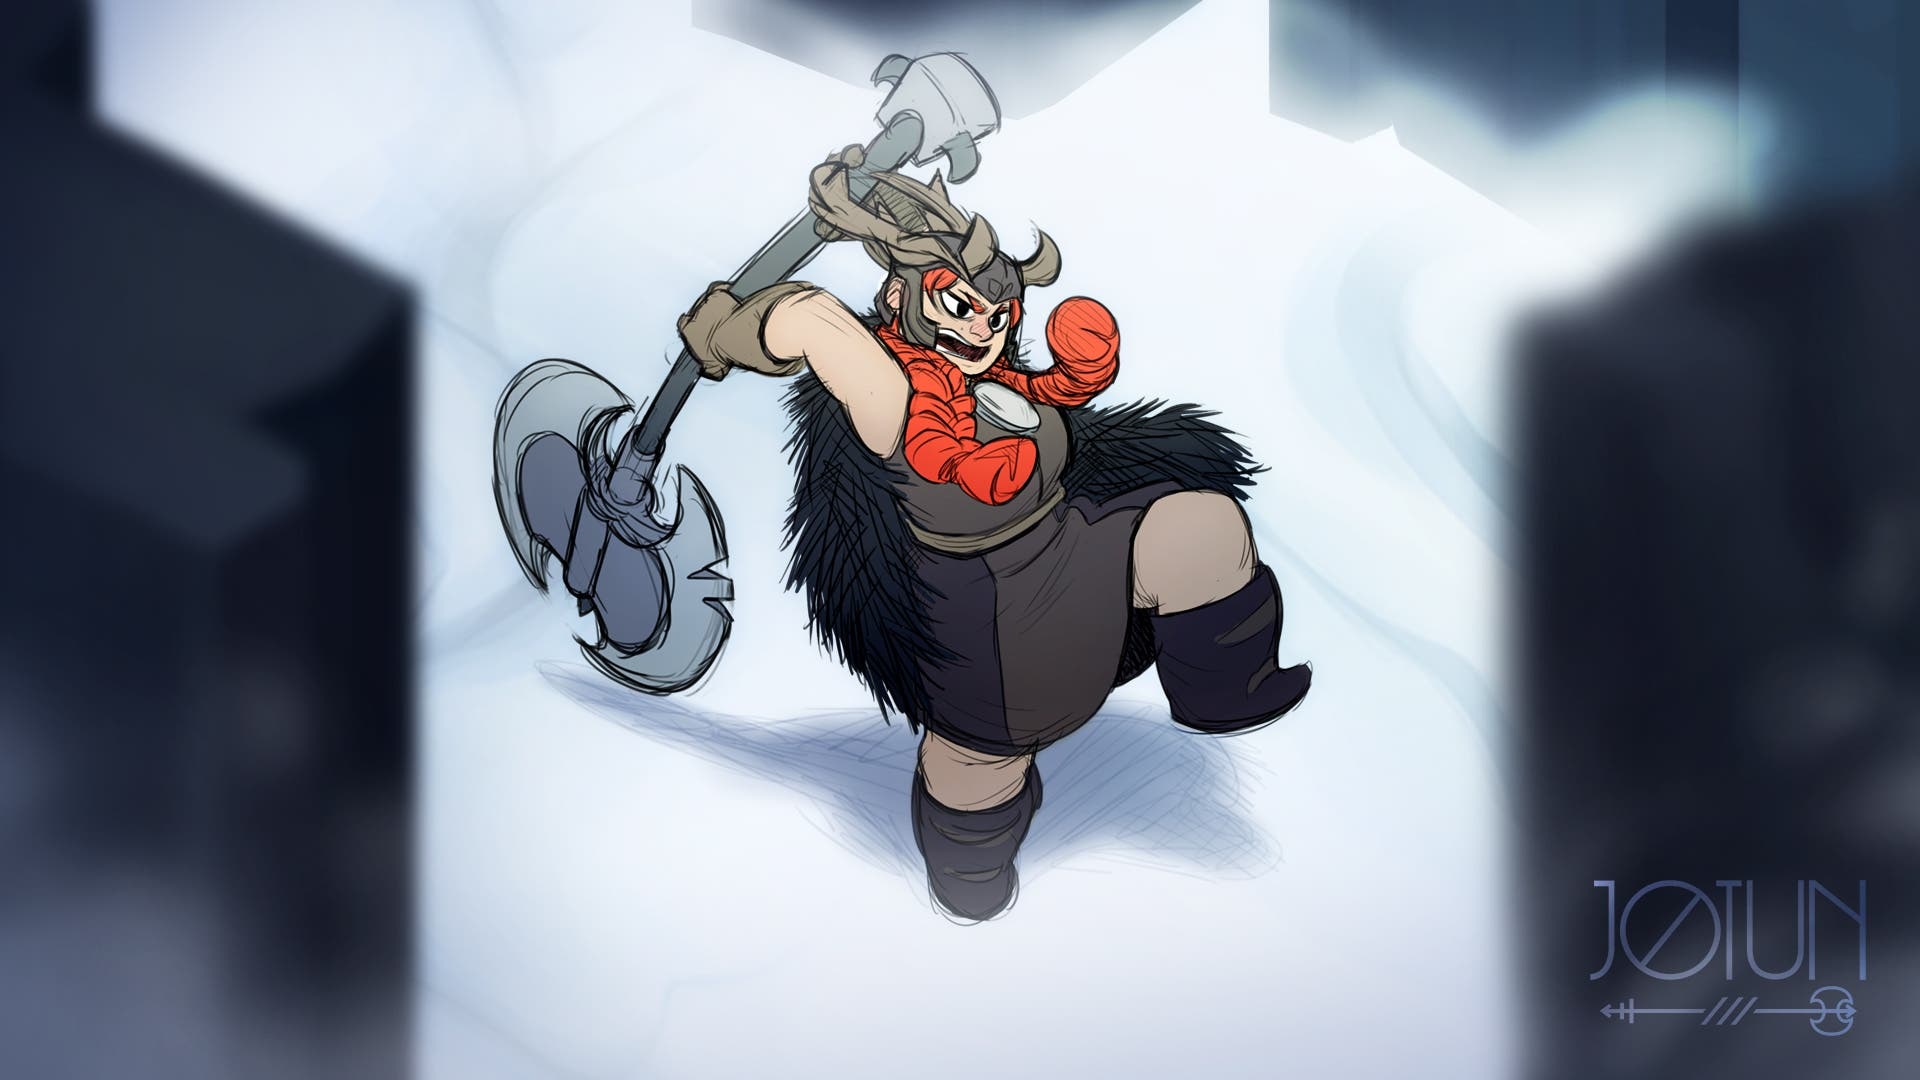 thora-animation